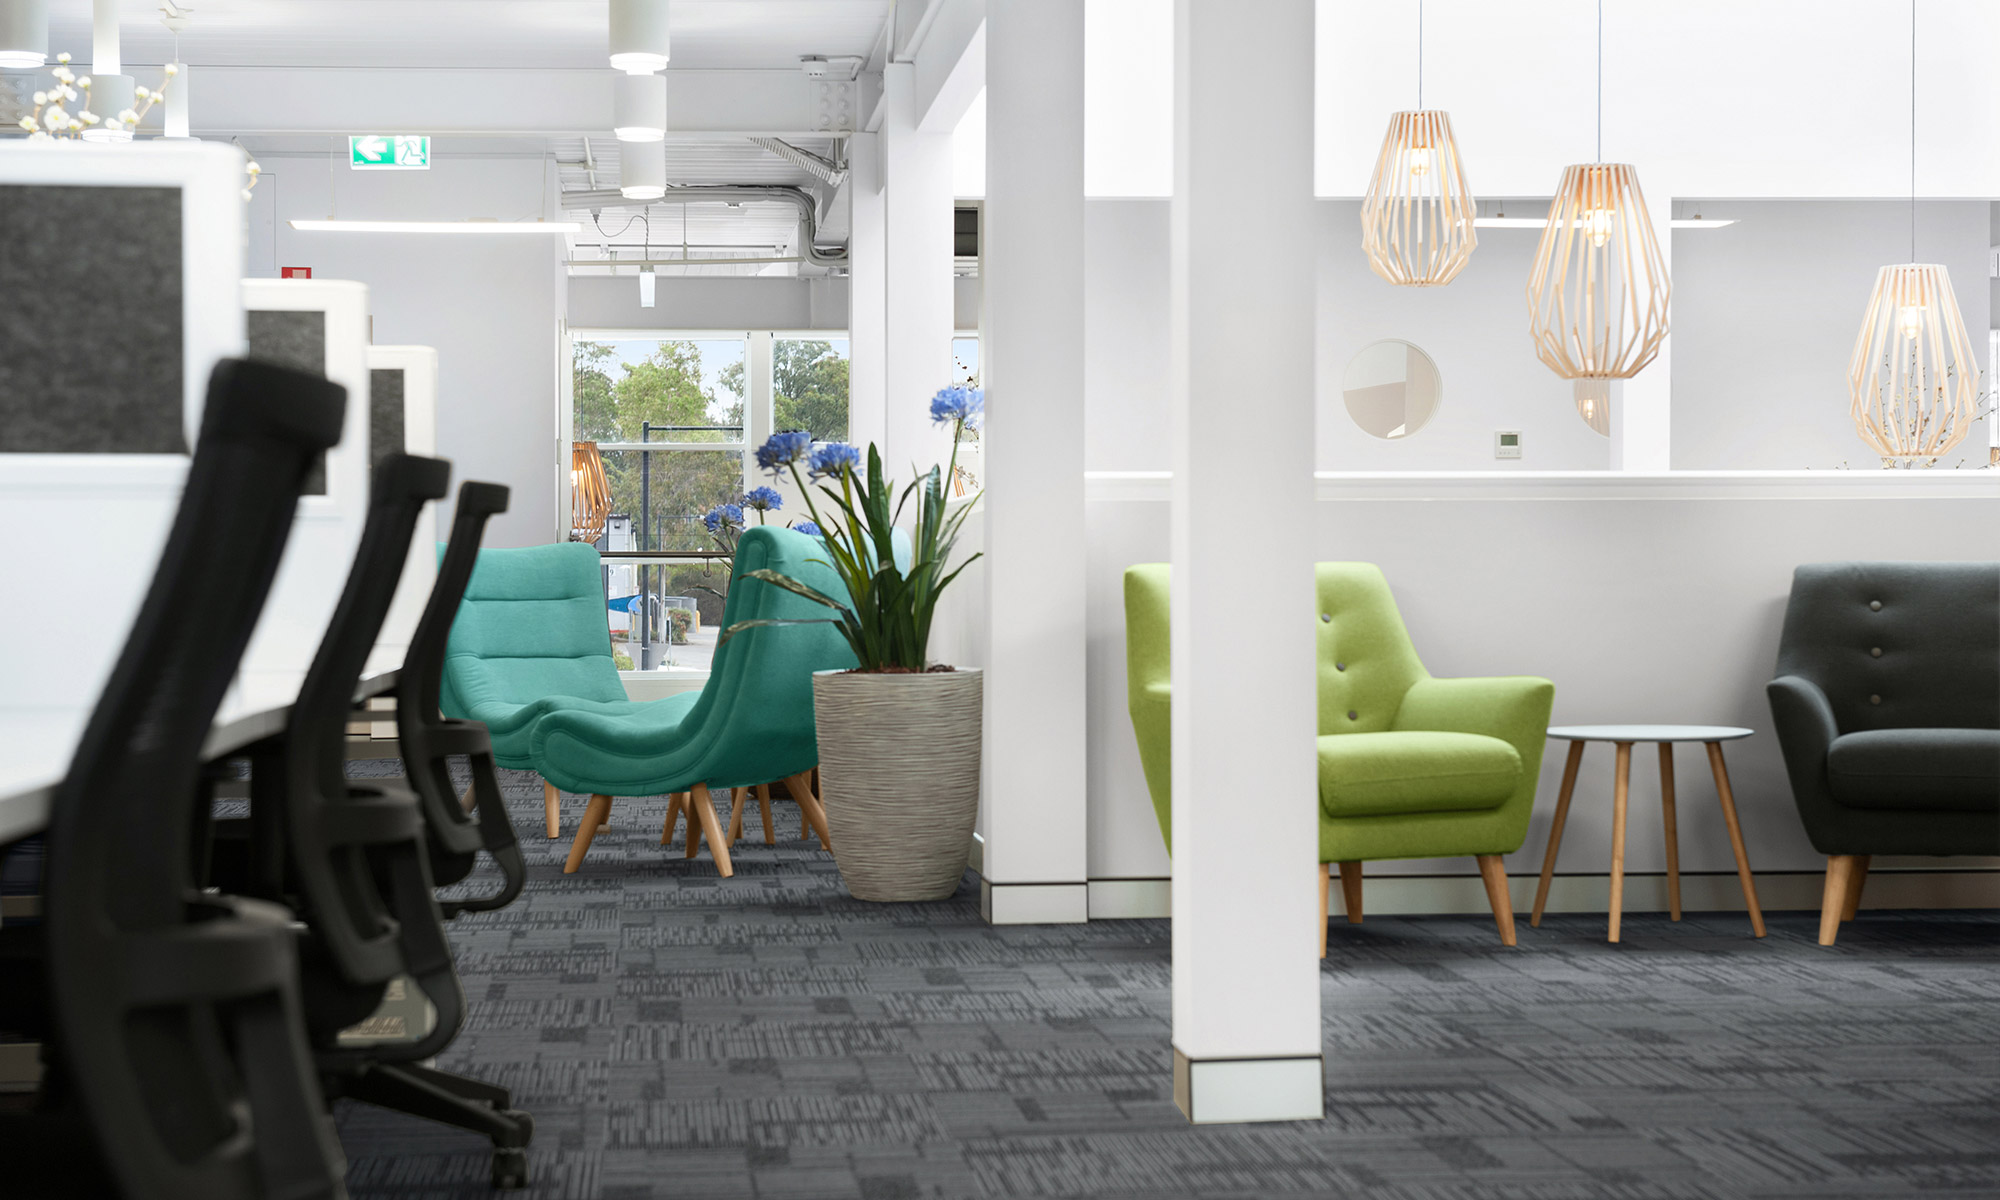 1.7 million people can't be wrong about coworking